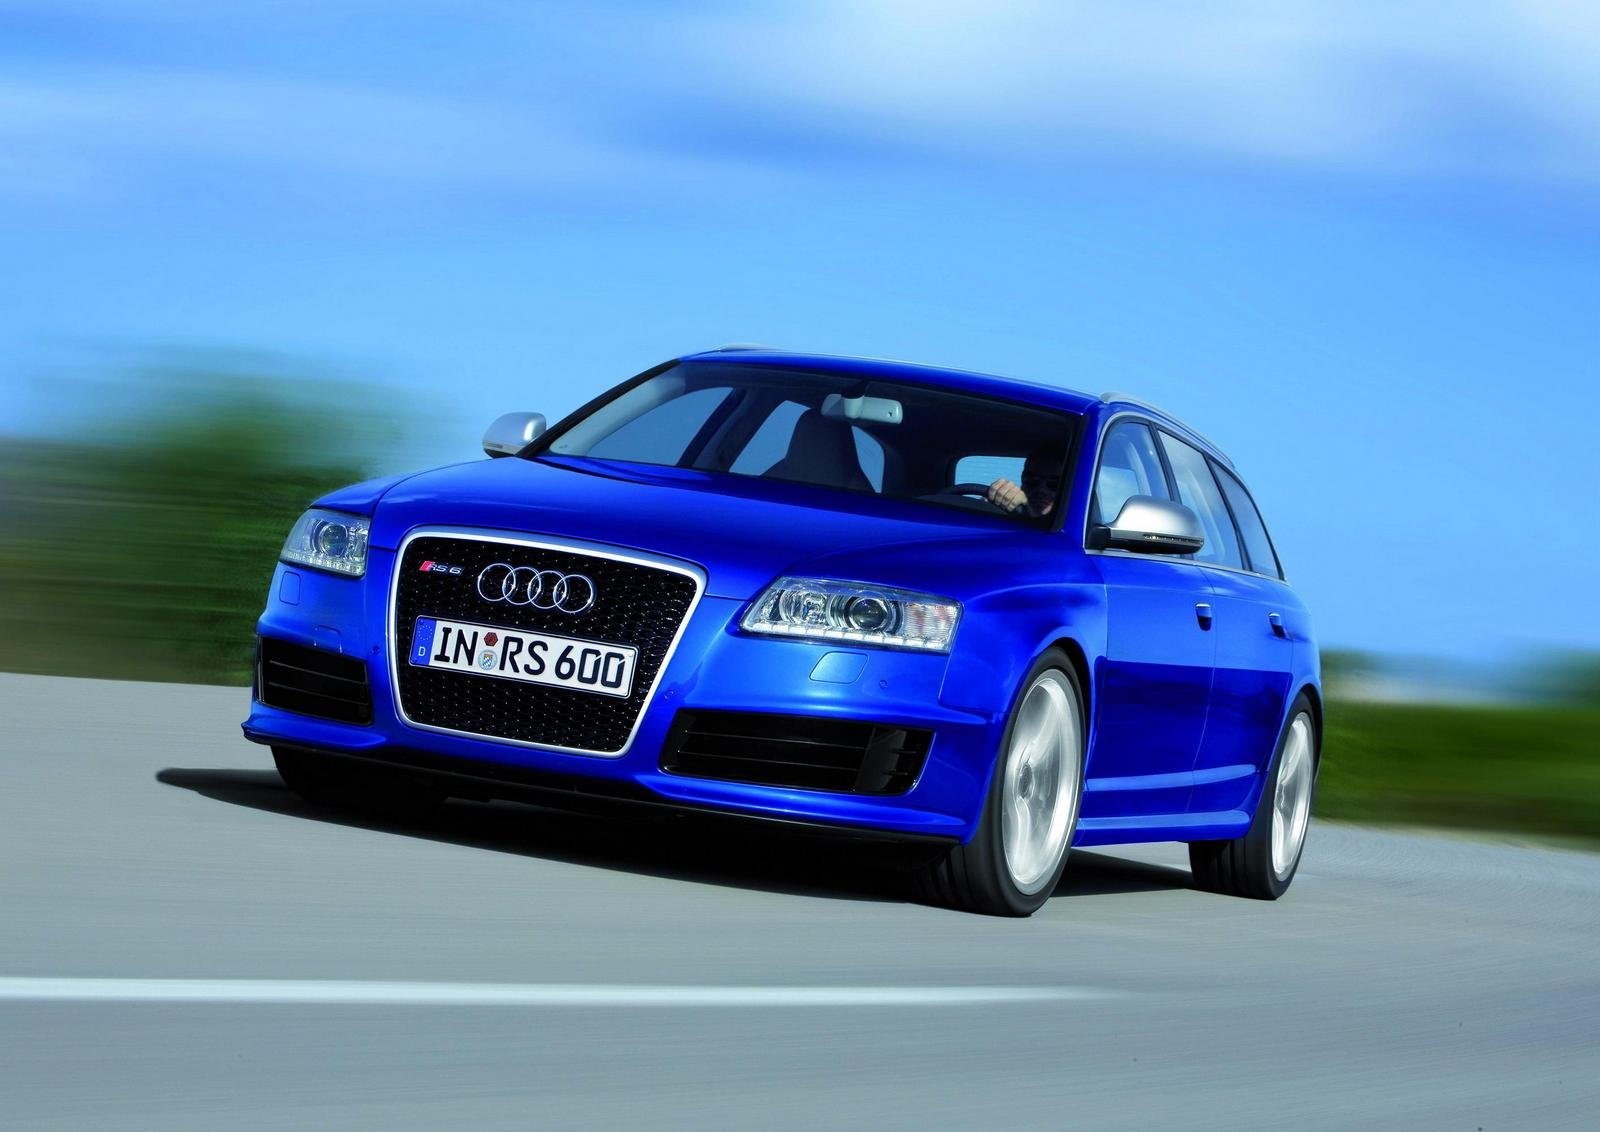 2008 audi rs6 avant picture 227843 car review top speed. Black Bedroom Furniture Sets. Home Design Ideas